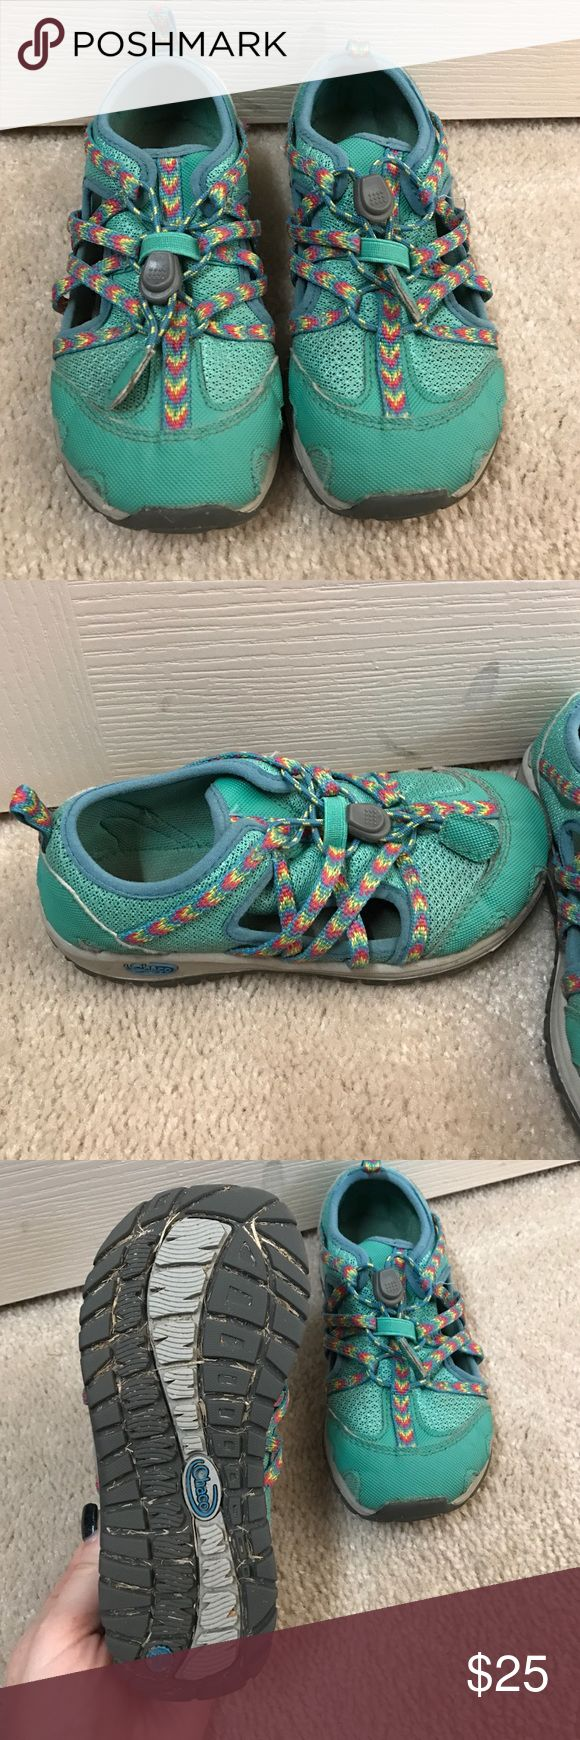 Chaco Outcross toddler girls shoes Size 12 toddler Chaco Outcross shoes. Awesome shoes for the summer. Waterproof and kids can put them on themselves. Only worn one season. Chaco Shoes Sandals & Flip Flops